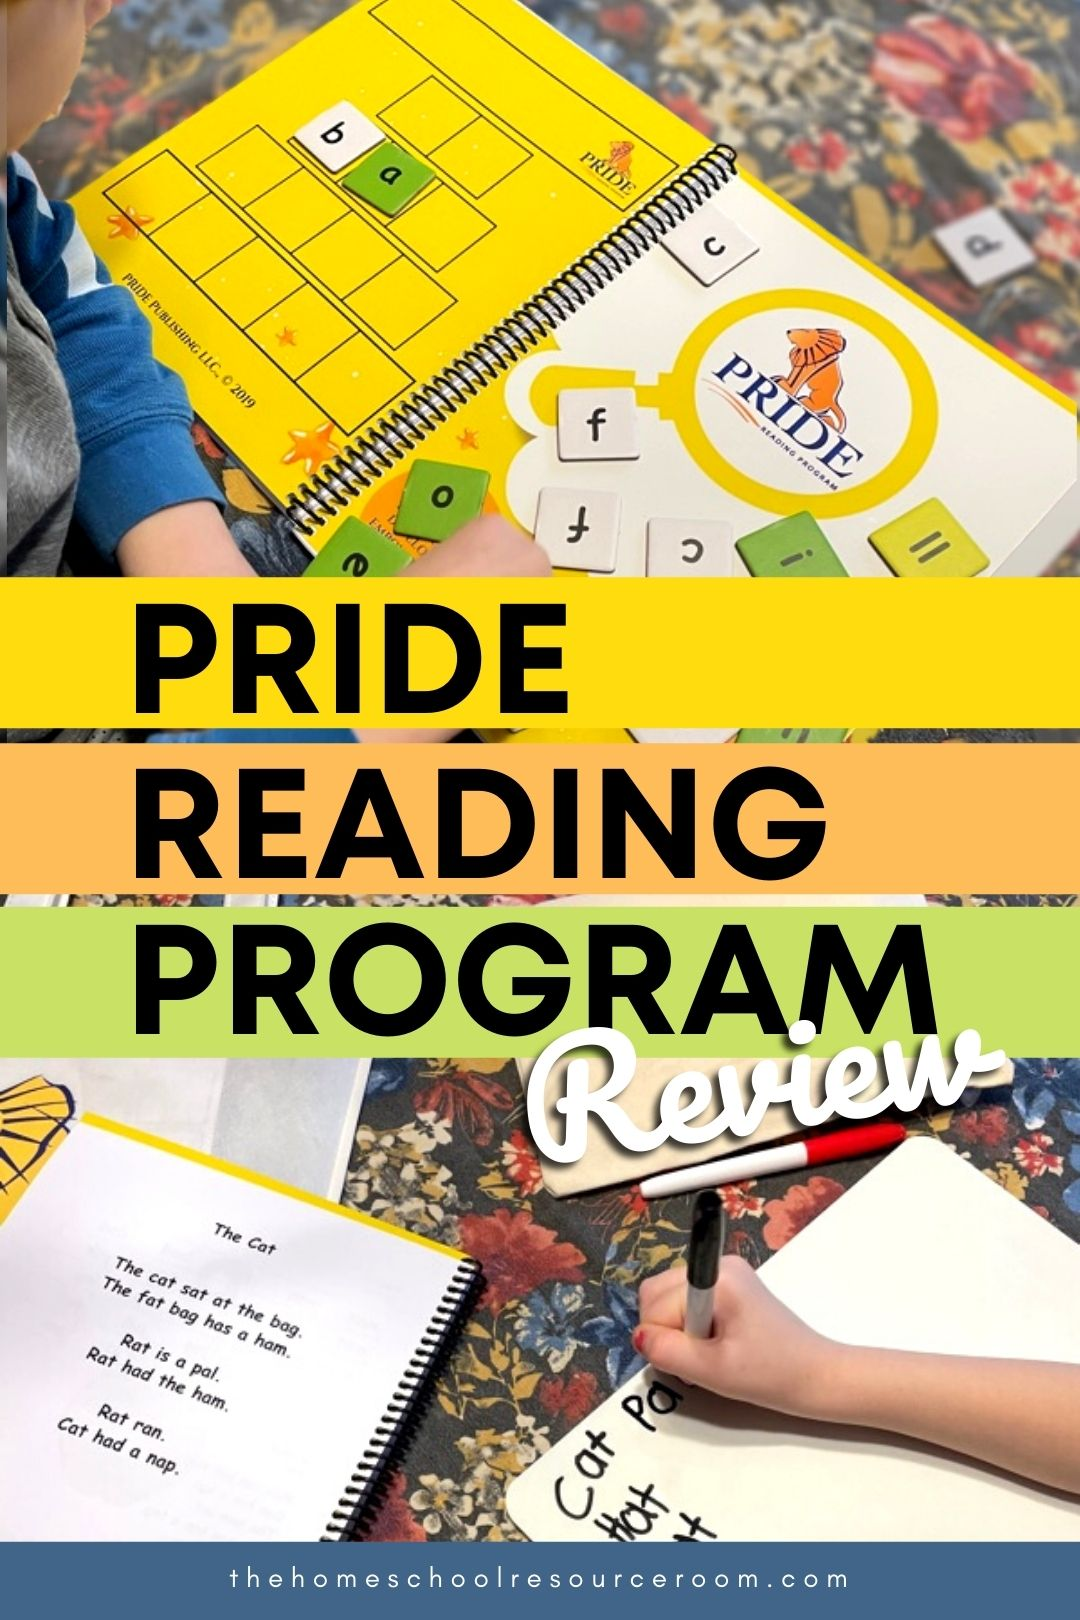 Pride Reading Program Review - an Orton Gillingham based learn-to-read curriculum for homeschoolers. #homeschool #homeschoolcurriculum #learntoread